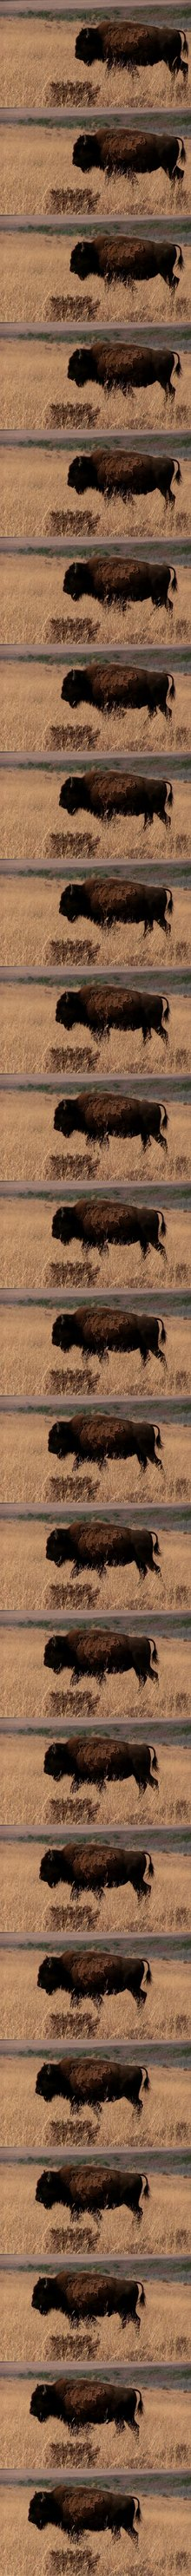 The American bison becomes the new national mammal